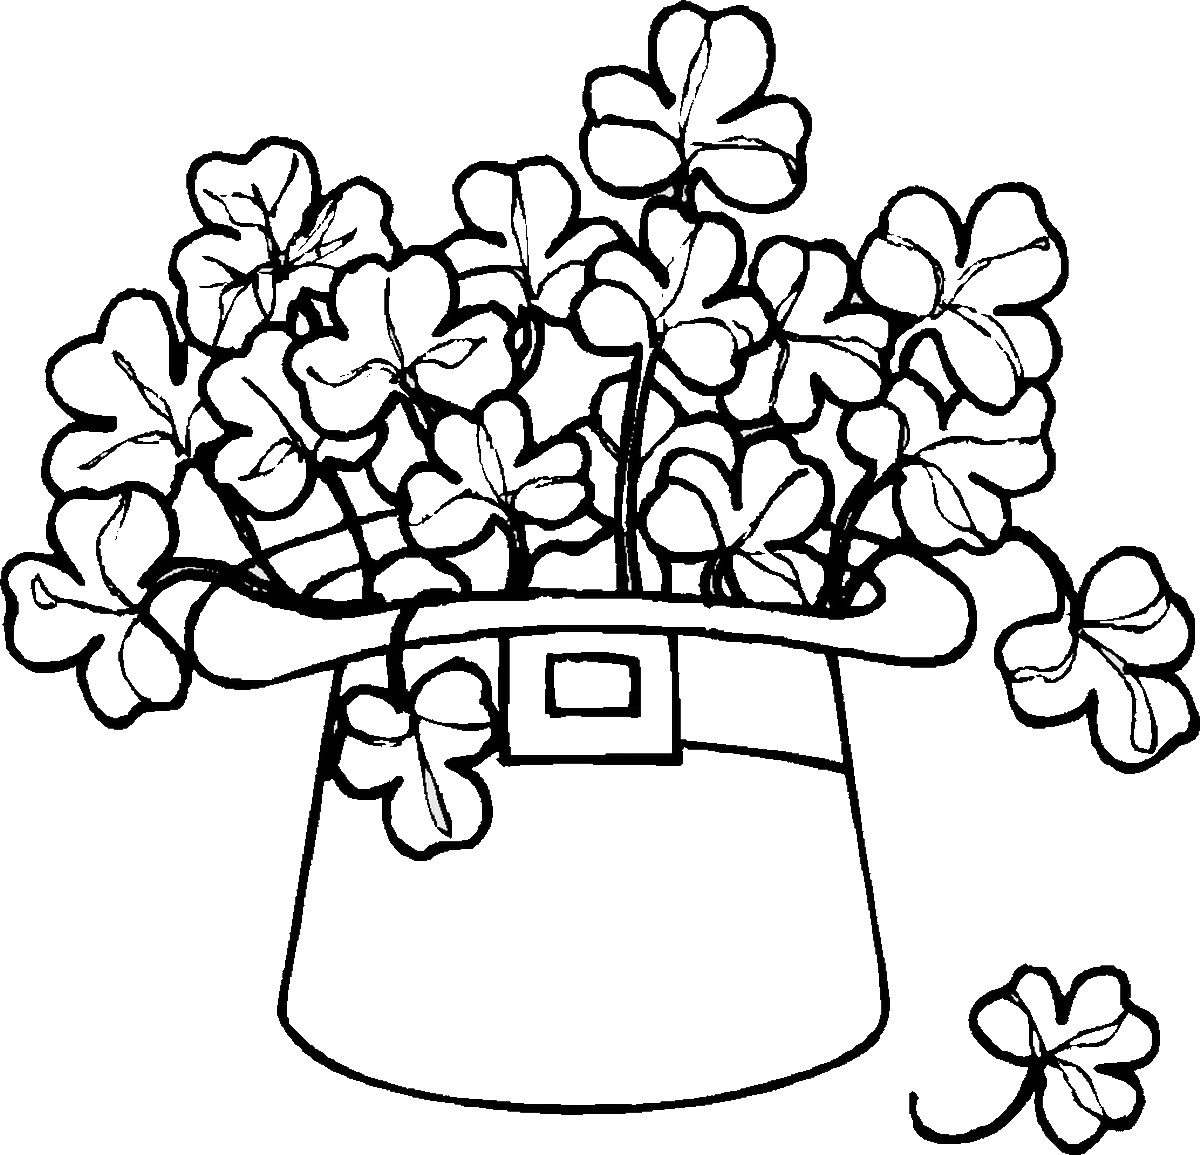 St Patricks Day Coloring Cool St Patrick Coloring Pages At